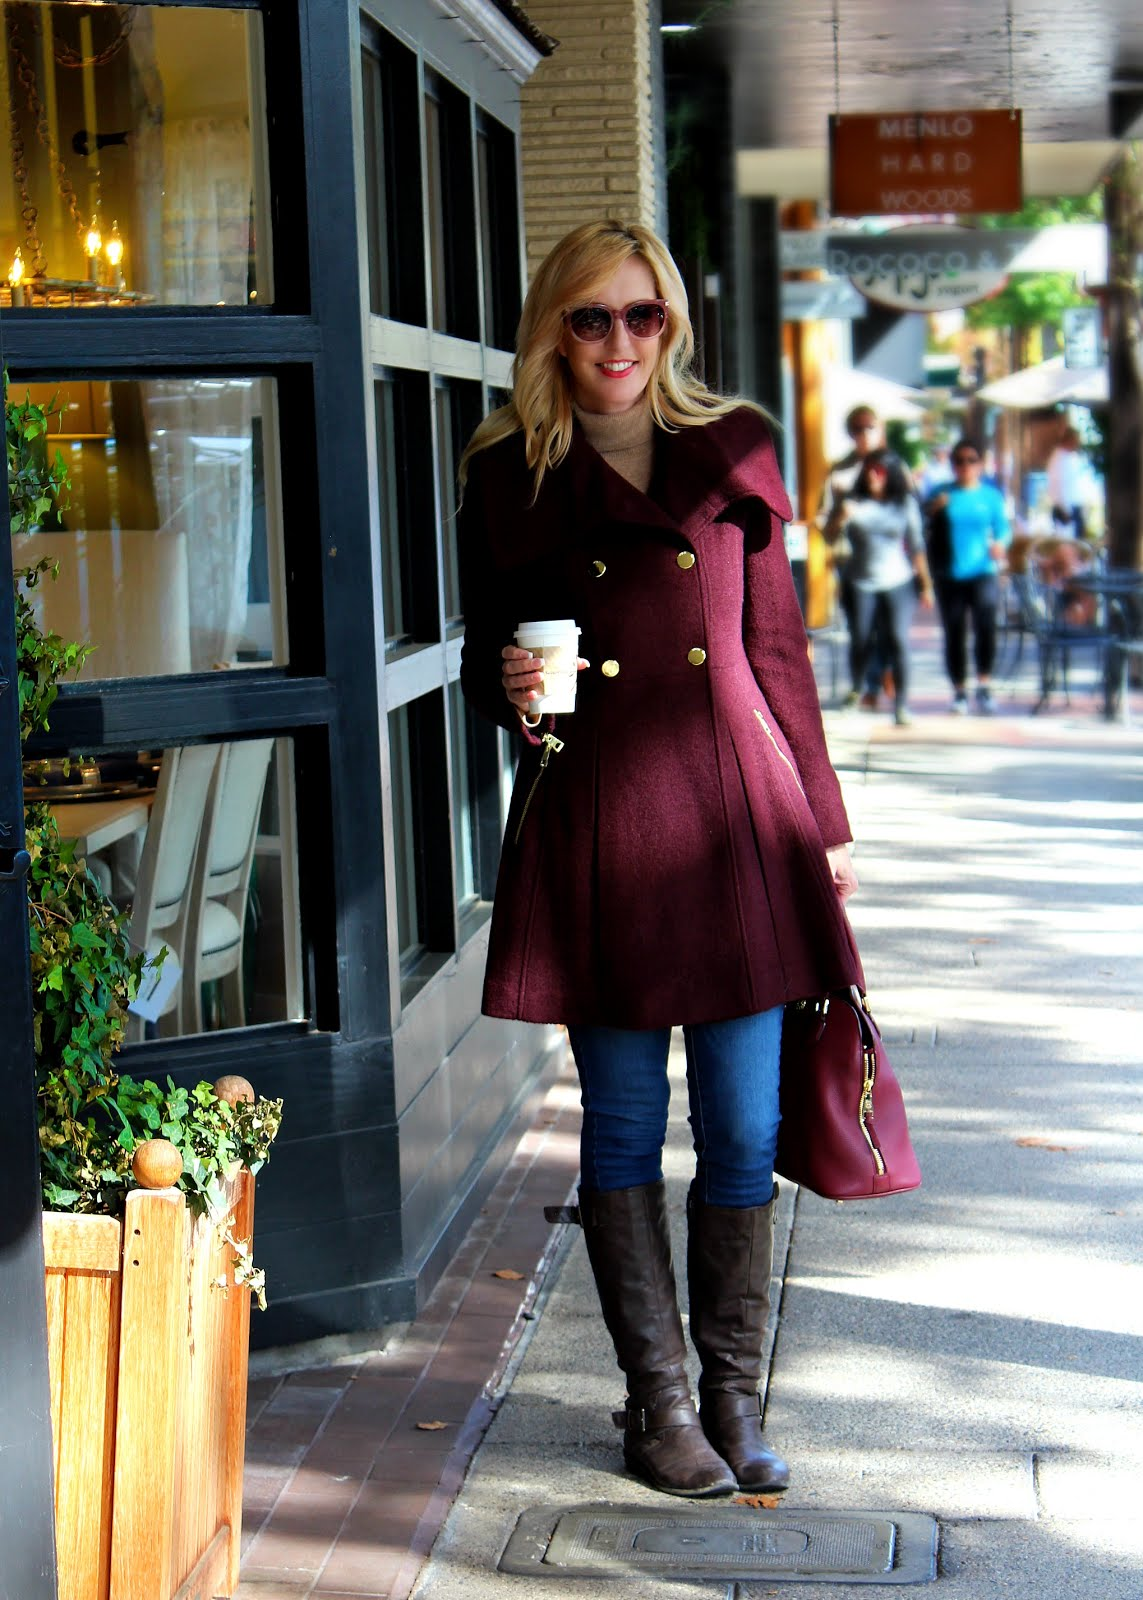 Downtown Coffee & Shopping